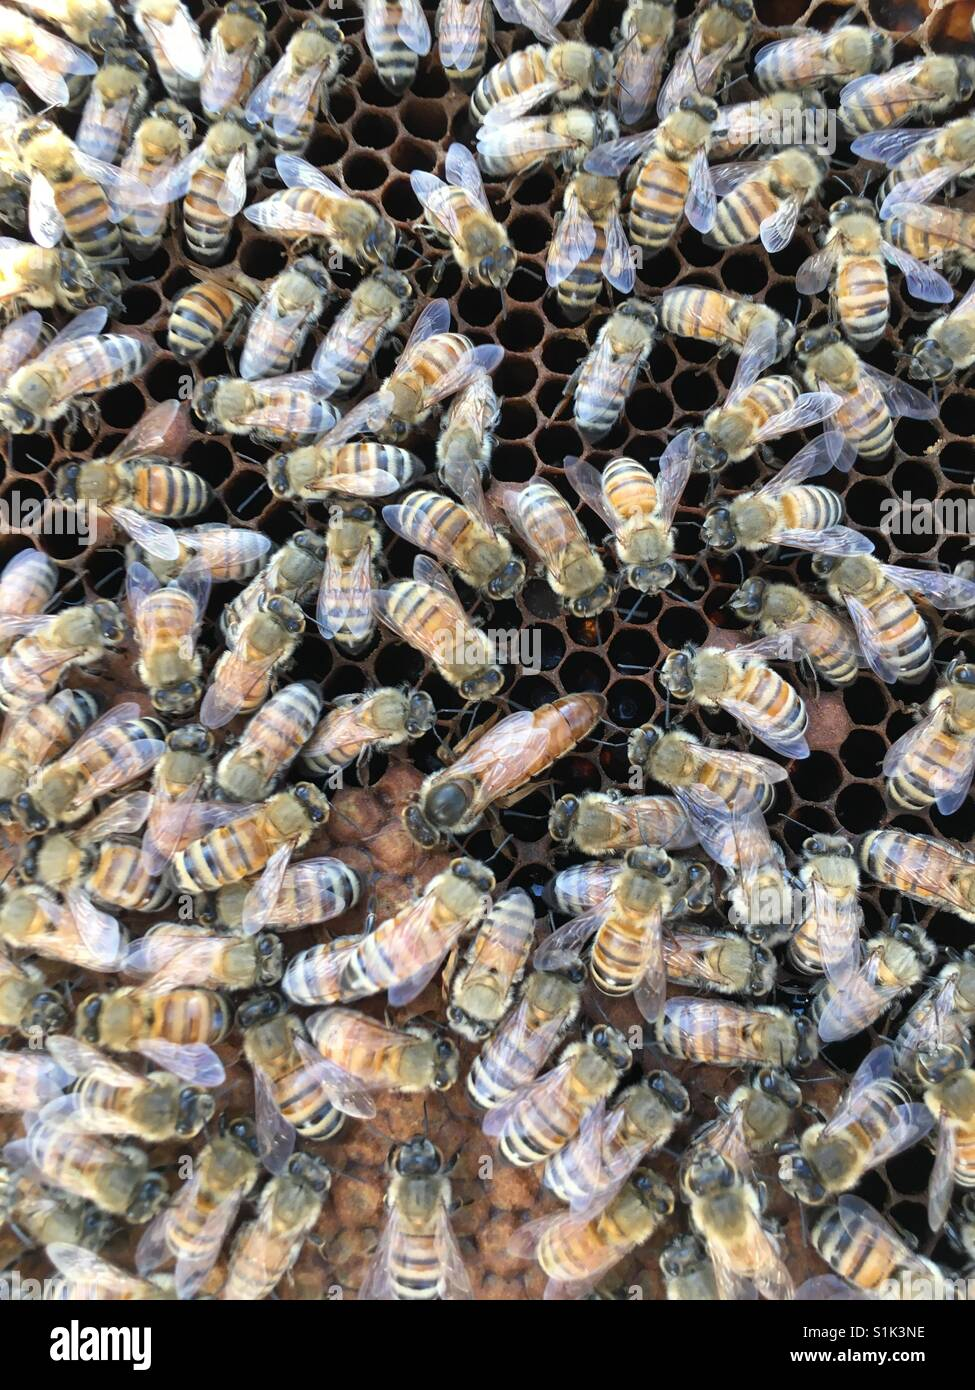 A beehive with a photo of a queen bee in the center. - Stock Image